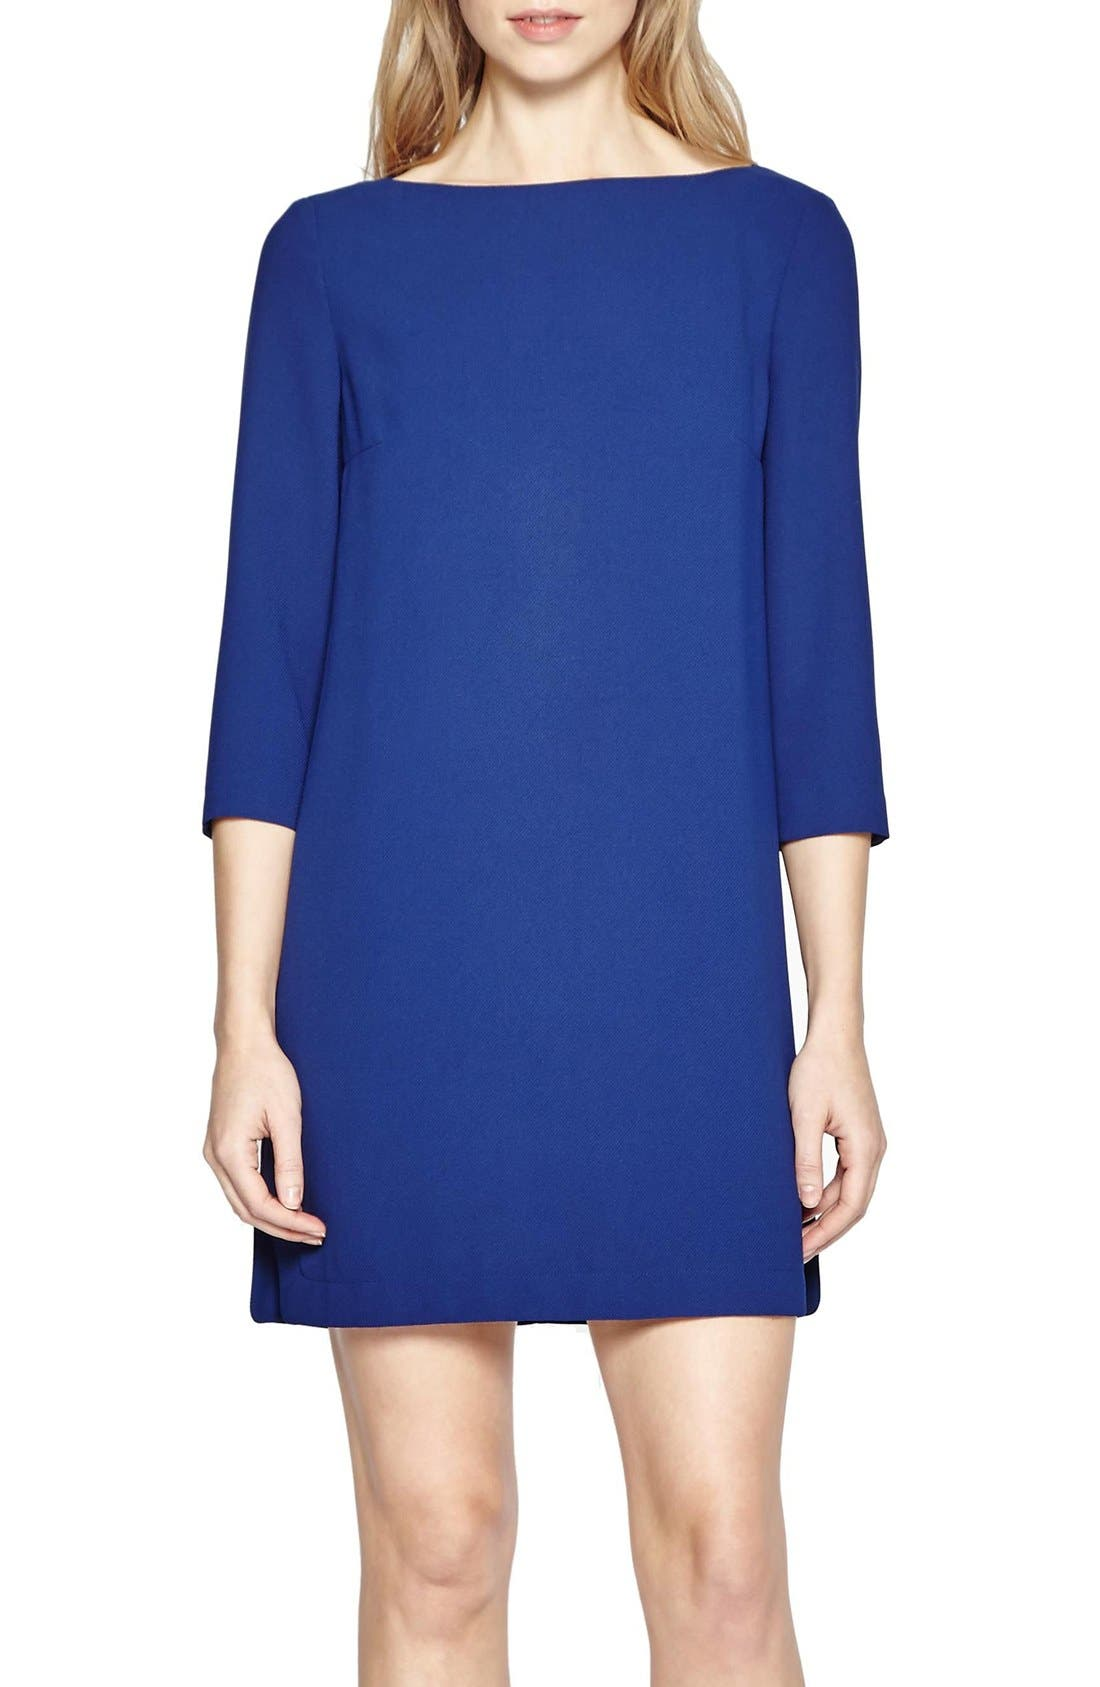 Alternate Image 1 Selected - French Connection Arrow Crepe Shift Dress